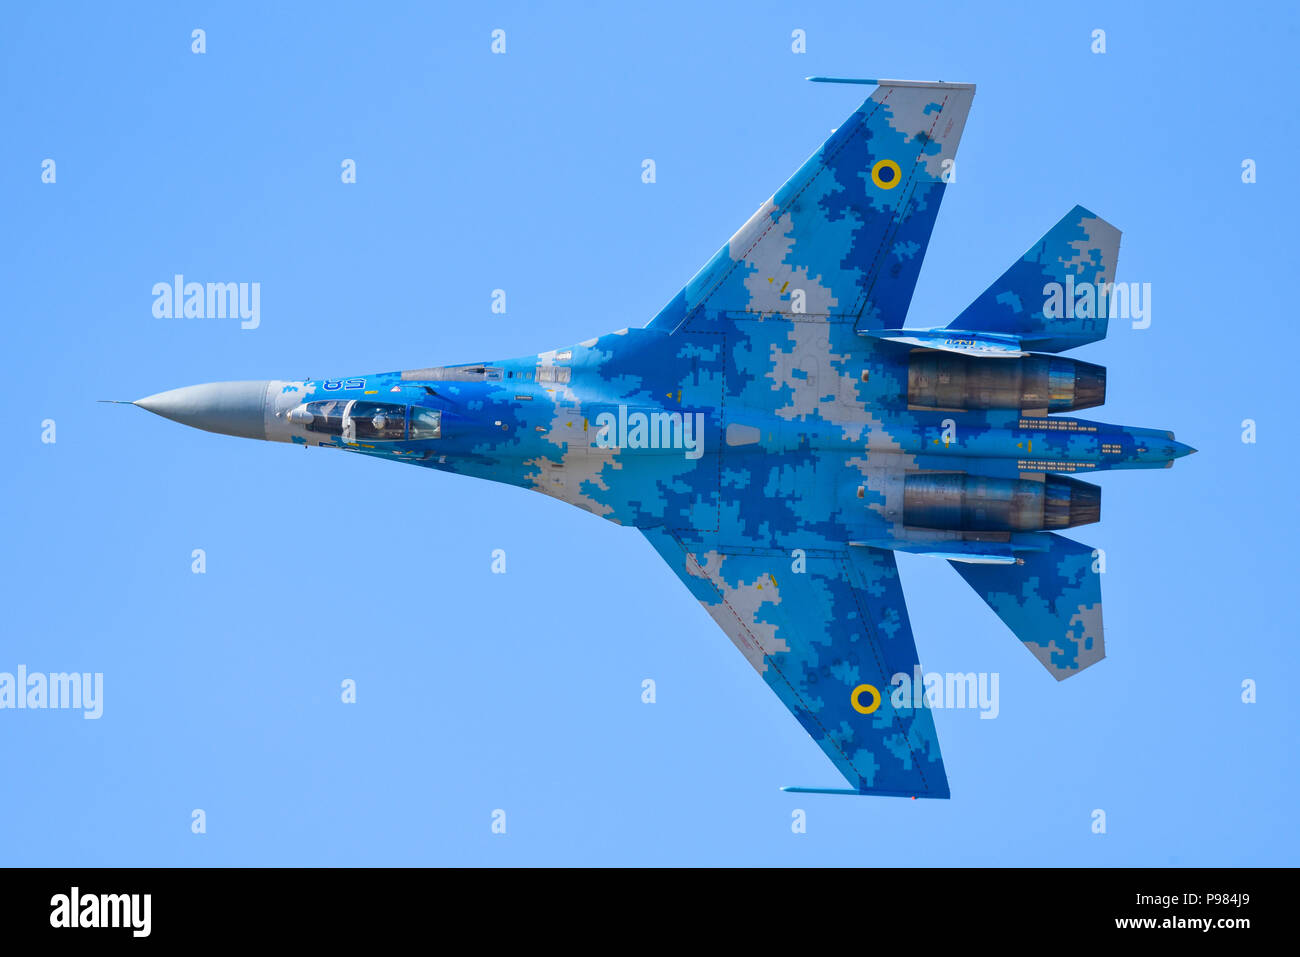 Ukrainian Sukhoi Su-27 Flanker at Royal International Air Tattoo, RIAT 2018, RAF Fairford. Russian jet fighter flying airshow air display - Stock Image